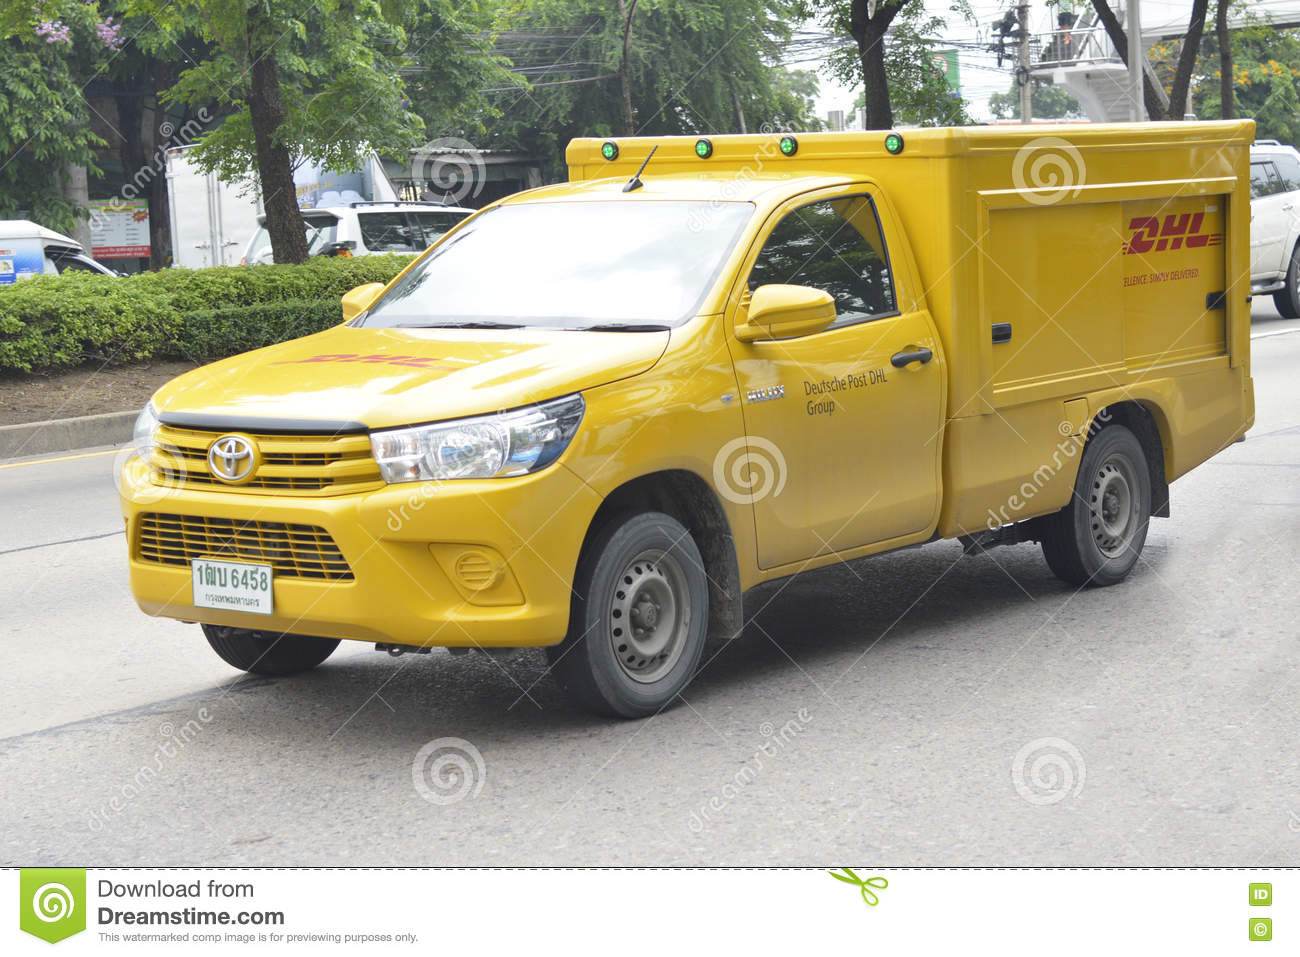 Dhl Pickup Locations >> Dhl Courier Delivery Service Editorial Image Image Of